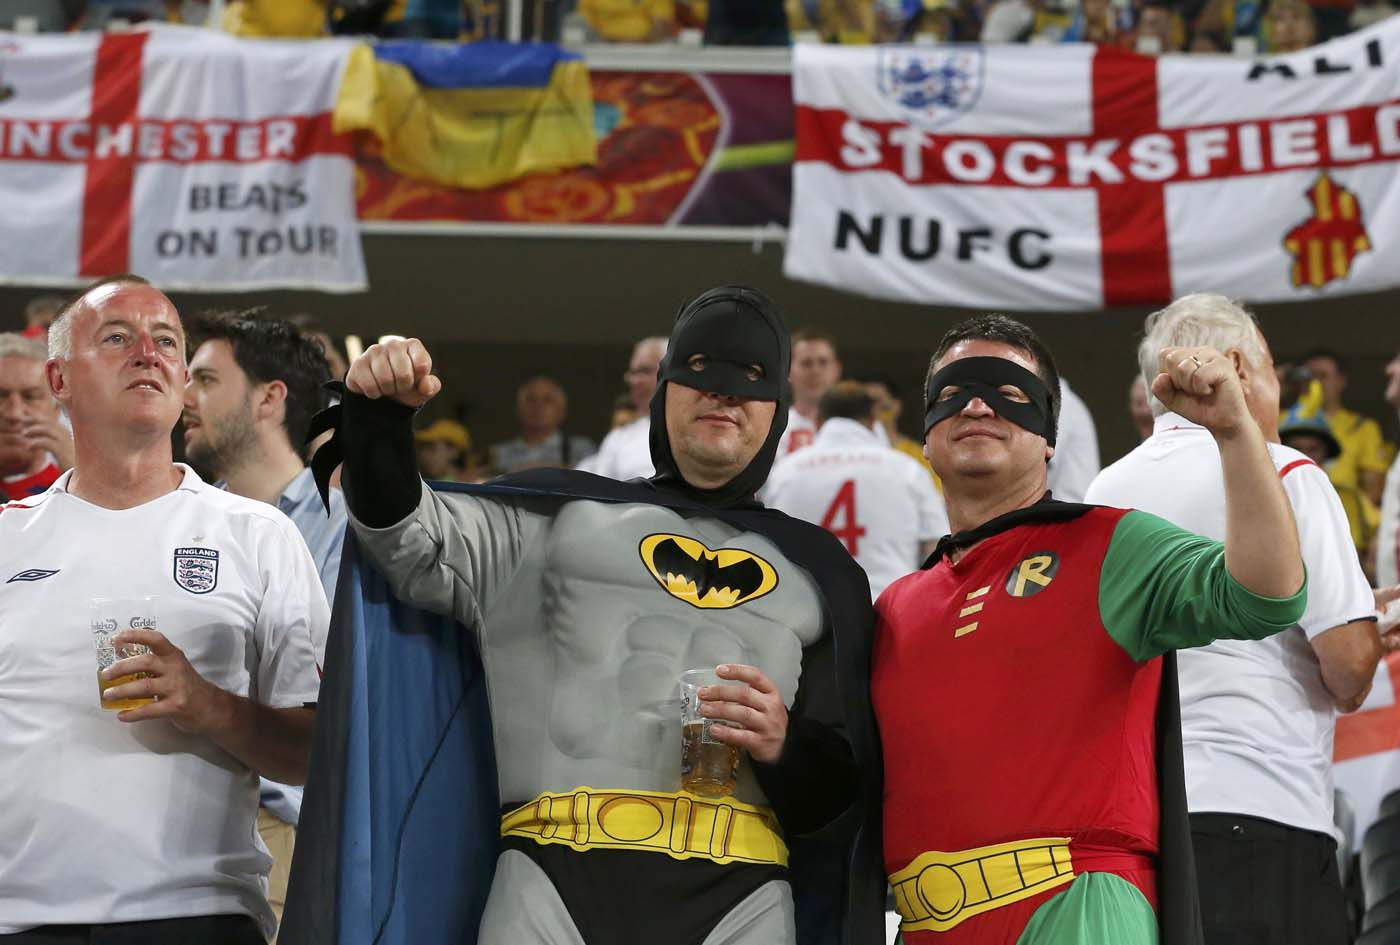 England soccer fans dressed as Batman and Robin cheer before their Group D Euro 2012 soccer match against Ukraine at the Donbass Arena in Donetsk, June 19, 2012. (Alessandro Bianchi/Reuters)